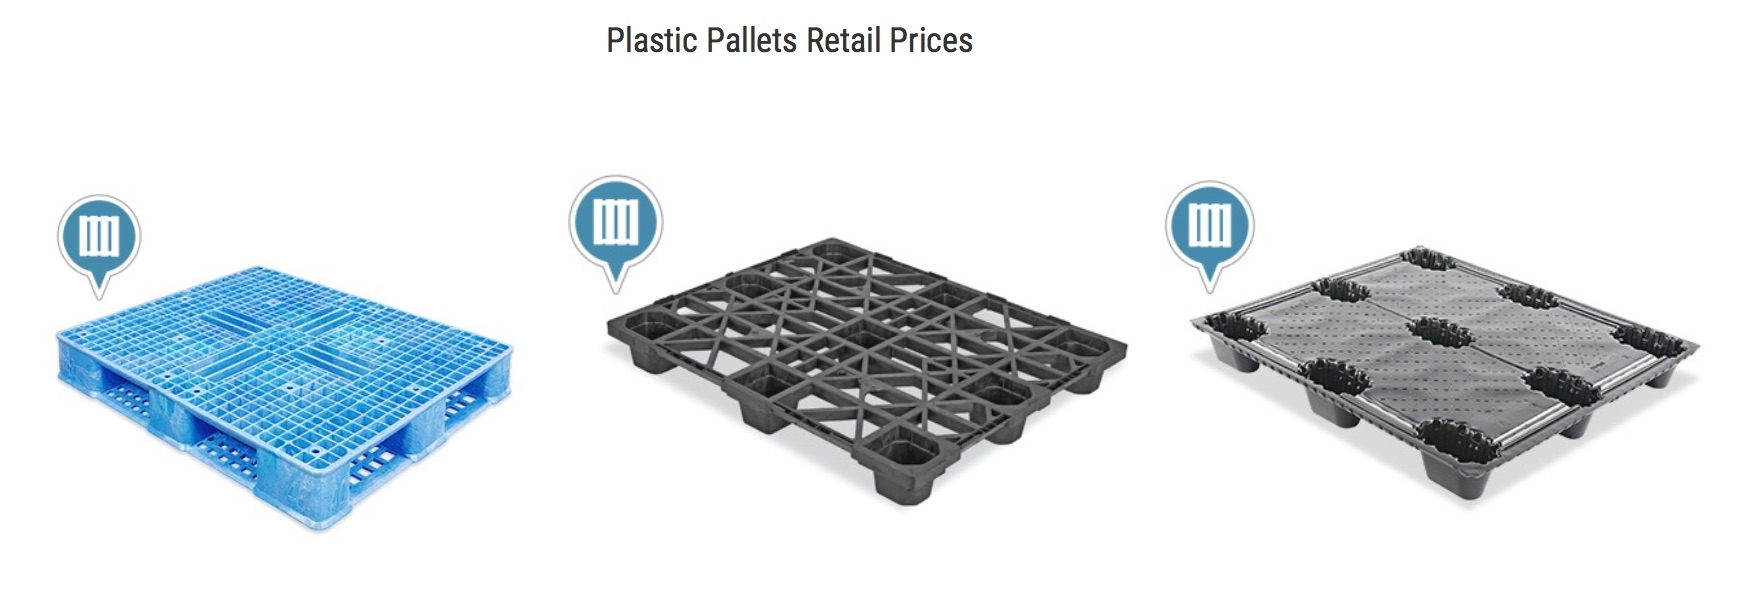 Plastic Pallet Prices